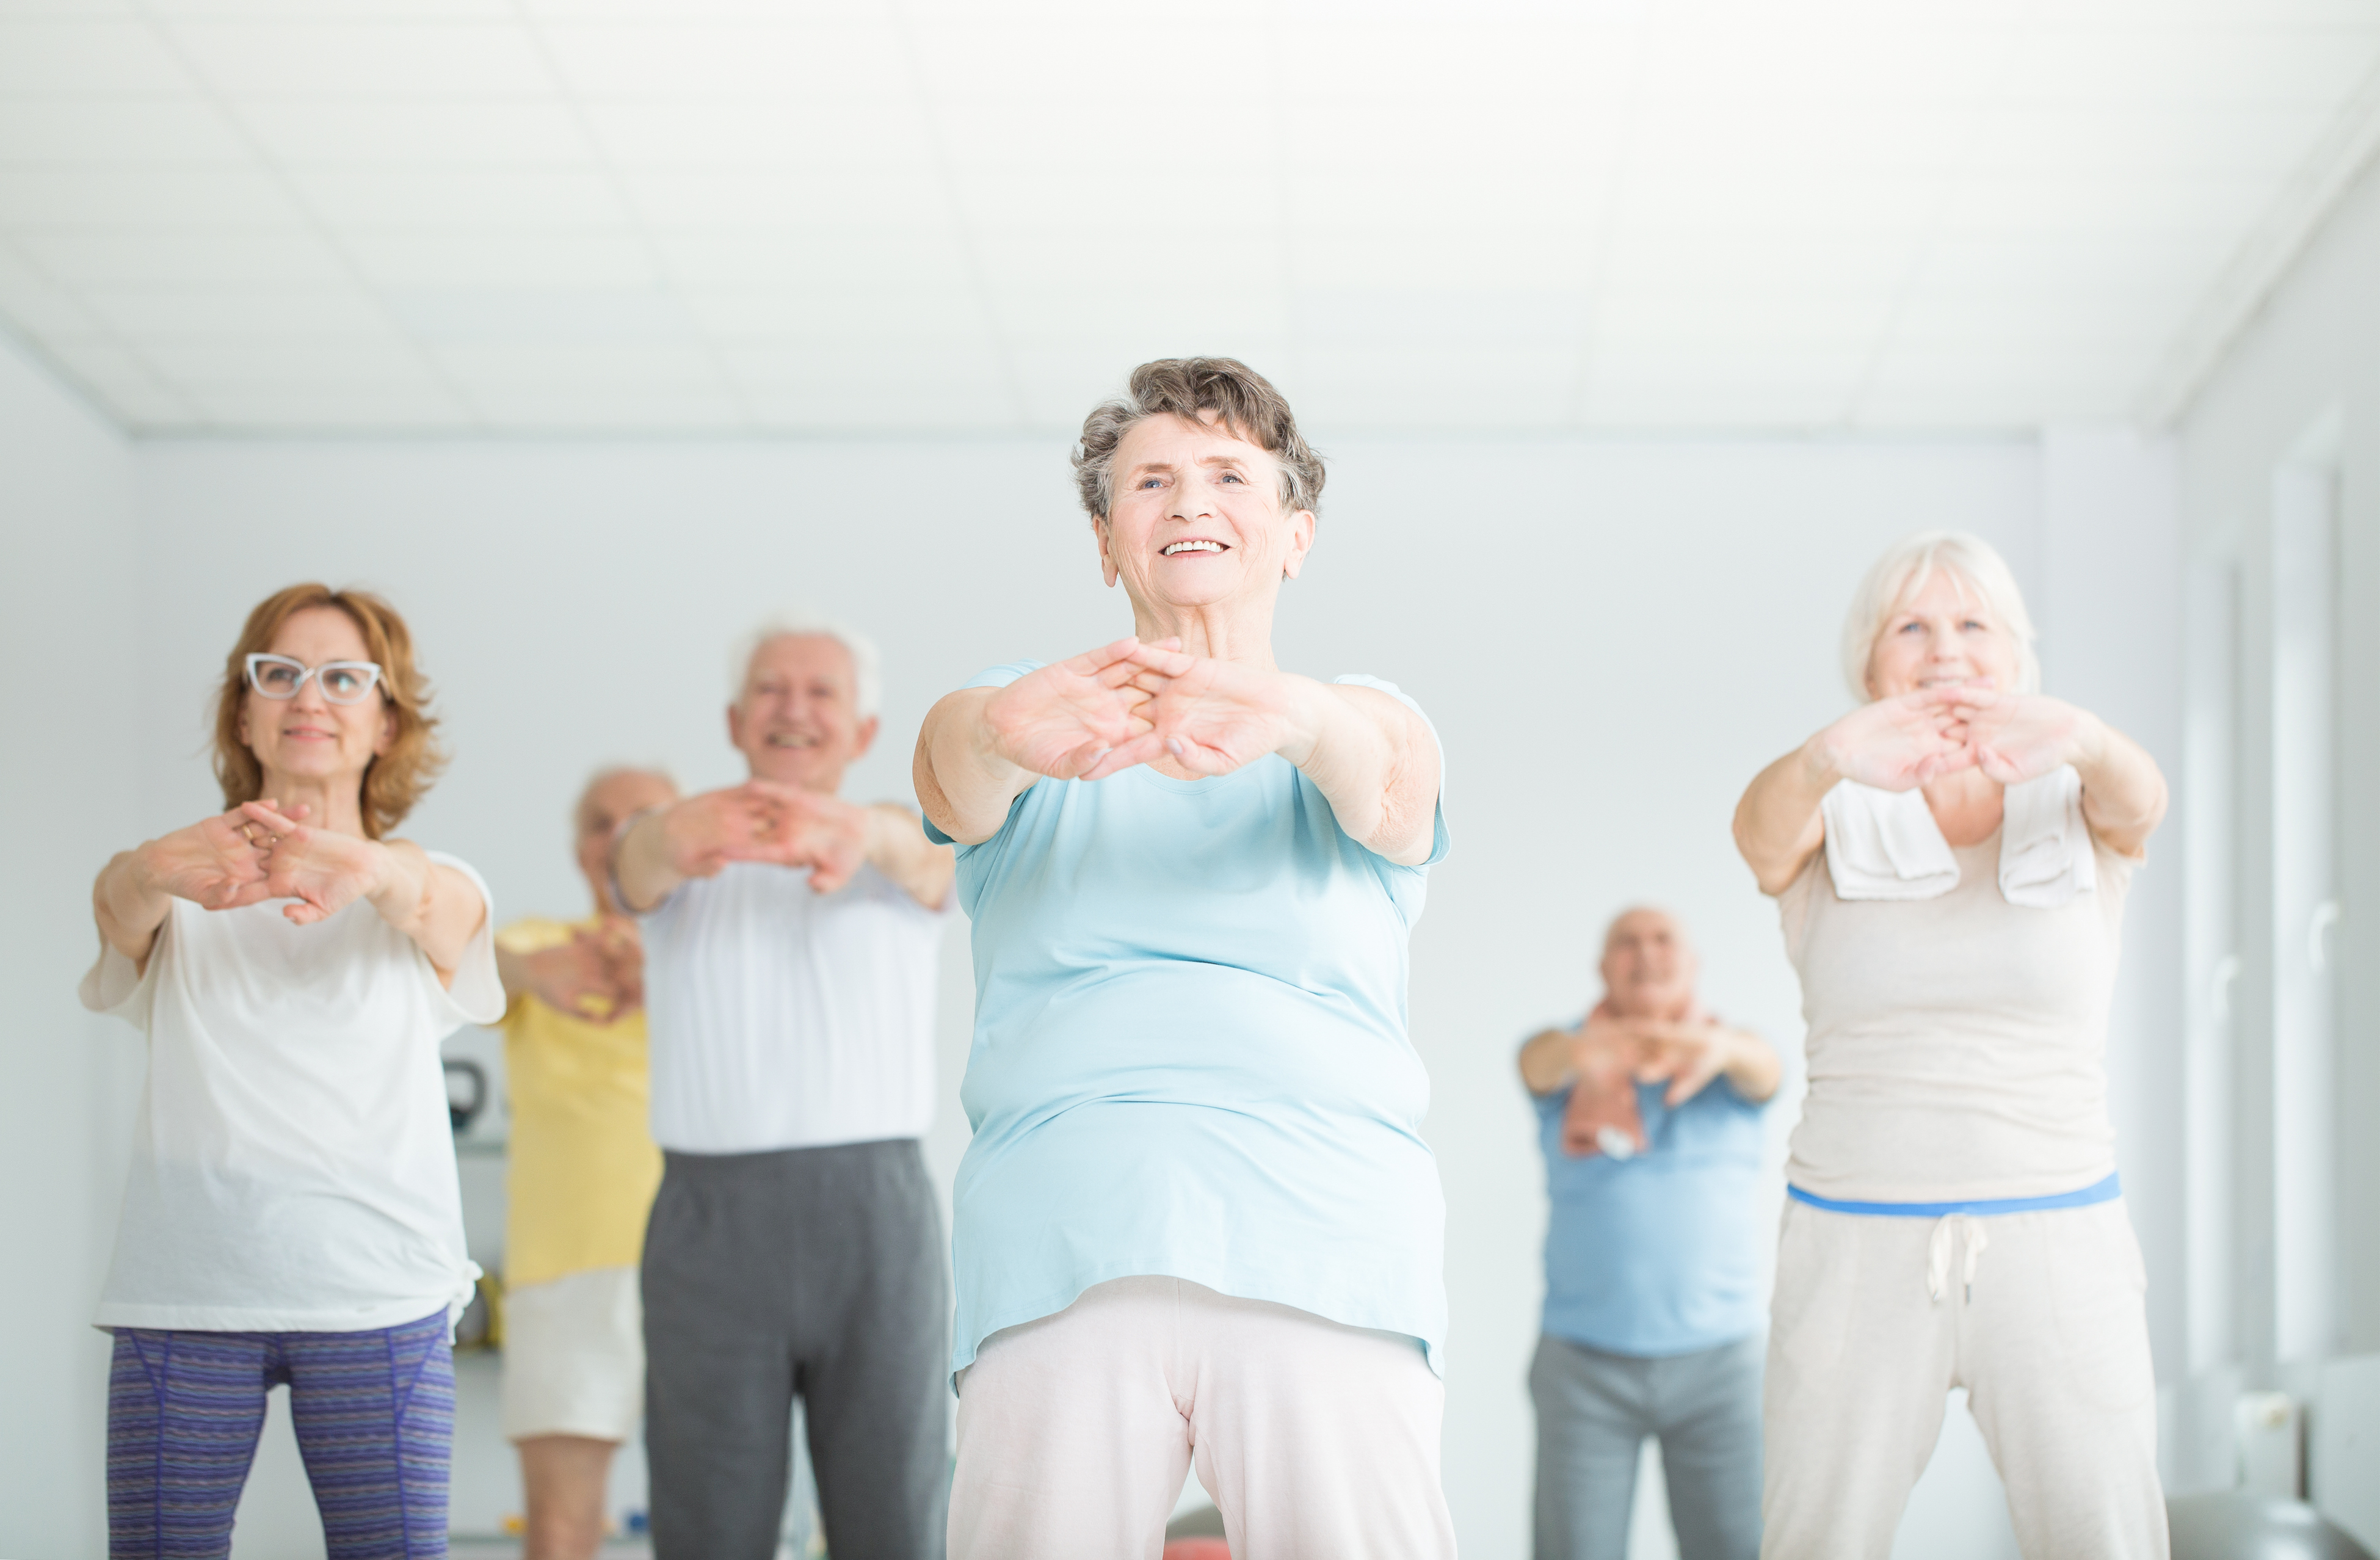 Older people working out